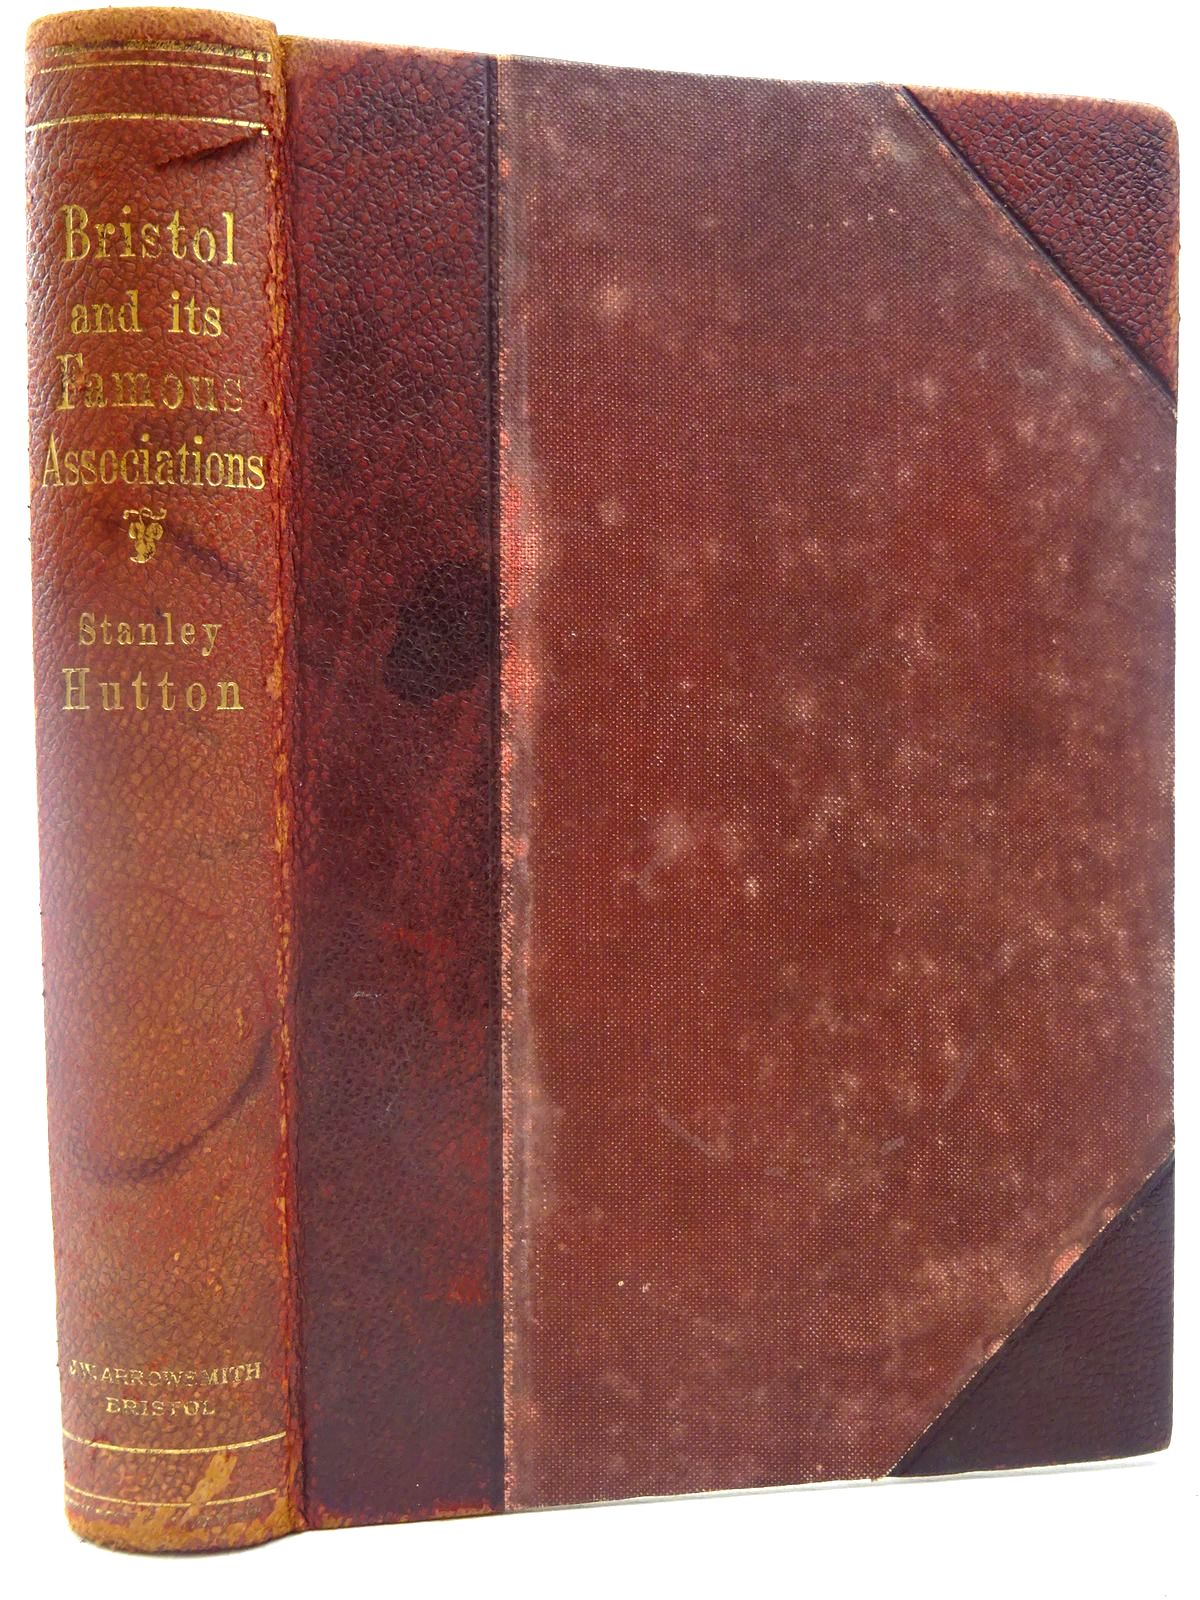 Photo of BRISTOL AND ITS FAMOUS ASSOCIATIONS written by Hutton, Stanley published by J.W. Arrowsmith (STOCK CODE: 2127051)  for sale by Stella & Rose's Books